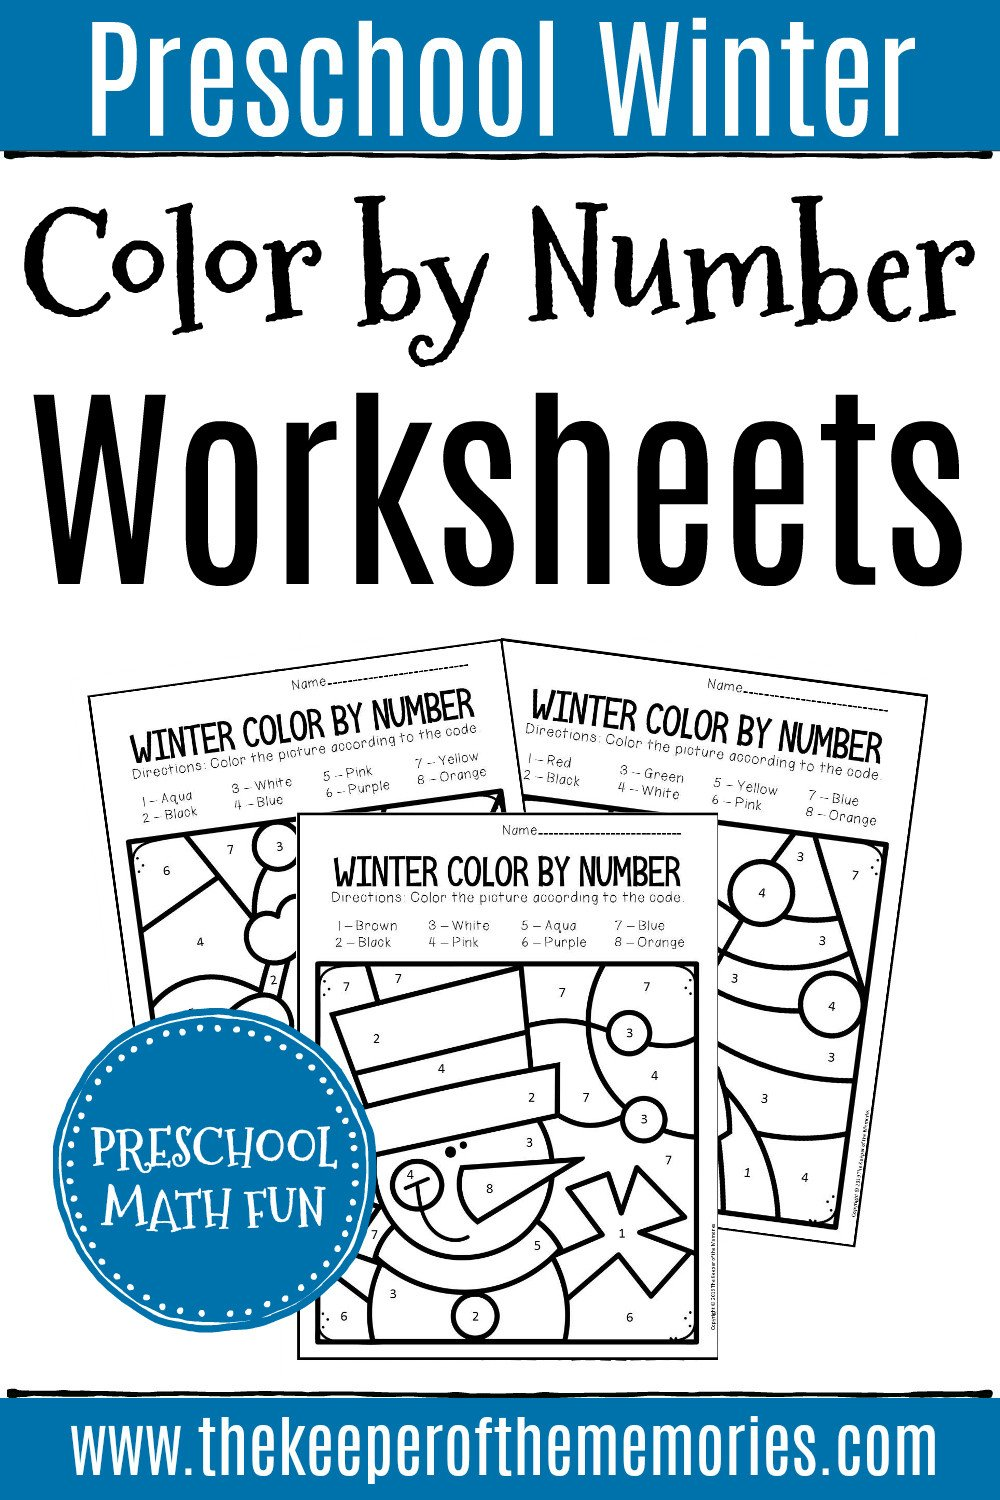 Winter Color by Number Worksheets Color by Number Winter Preschool Worksheets